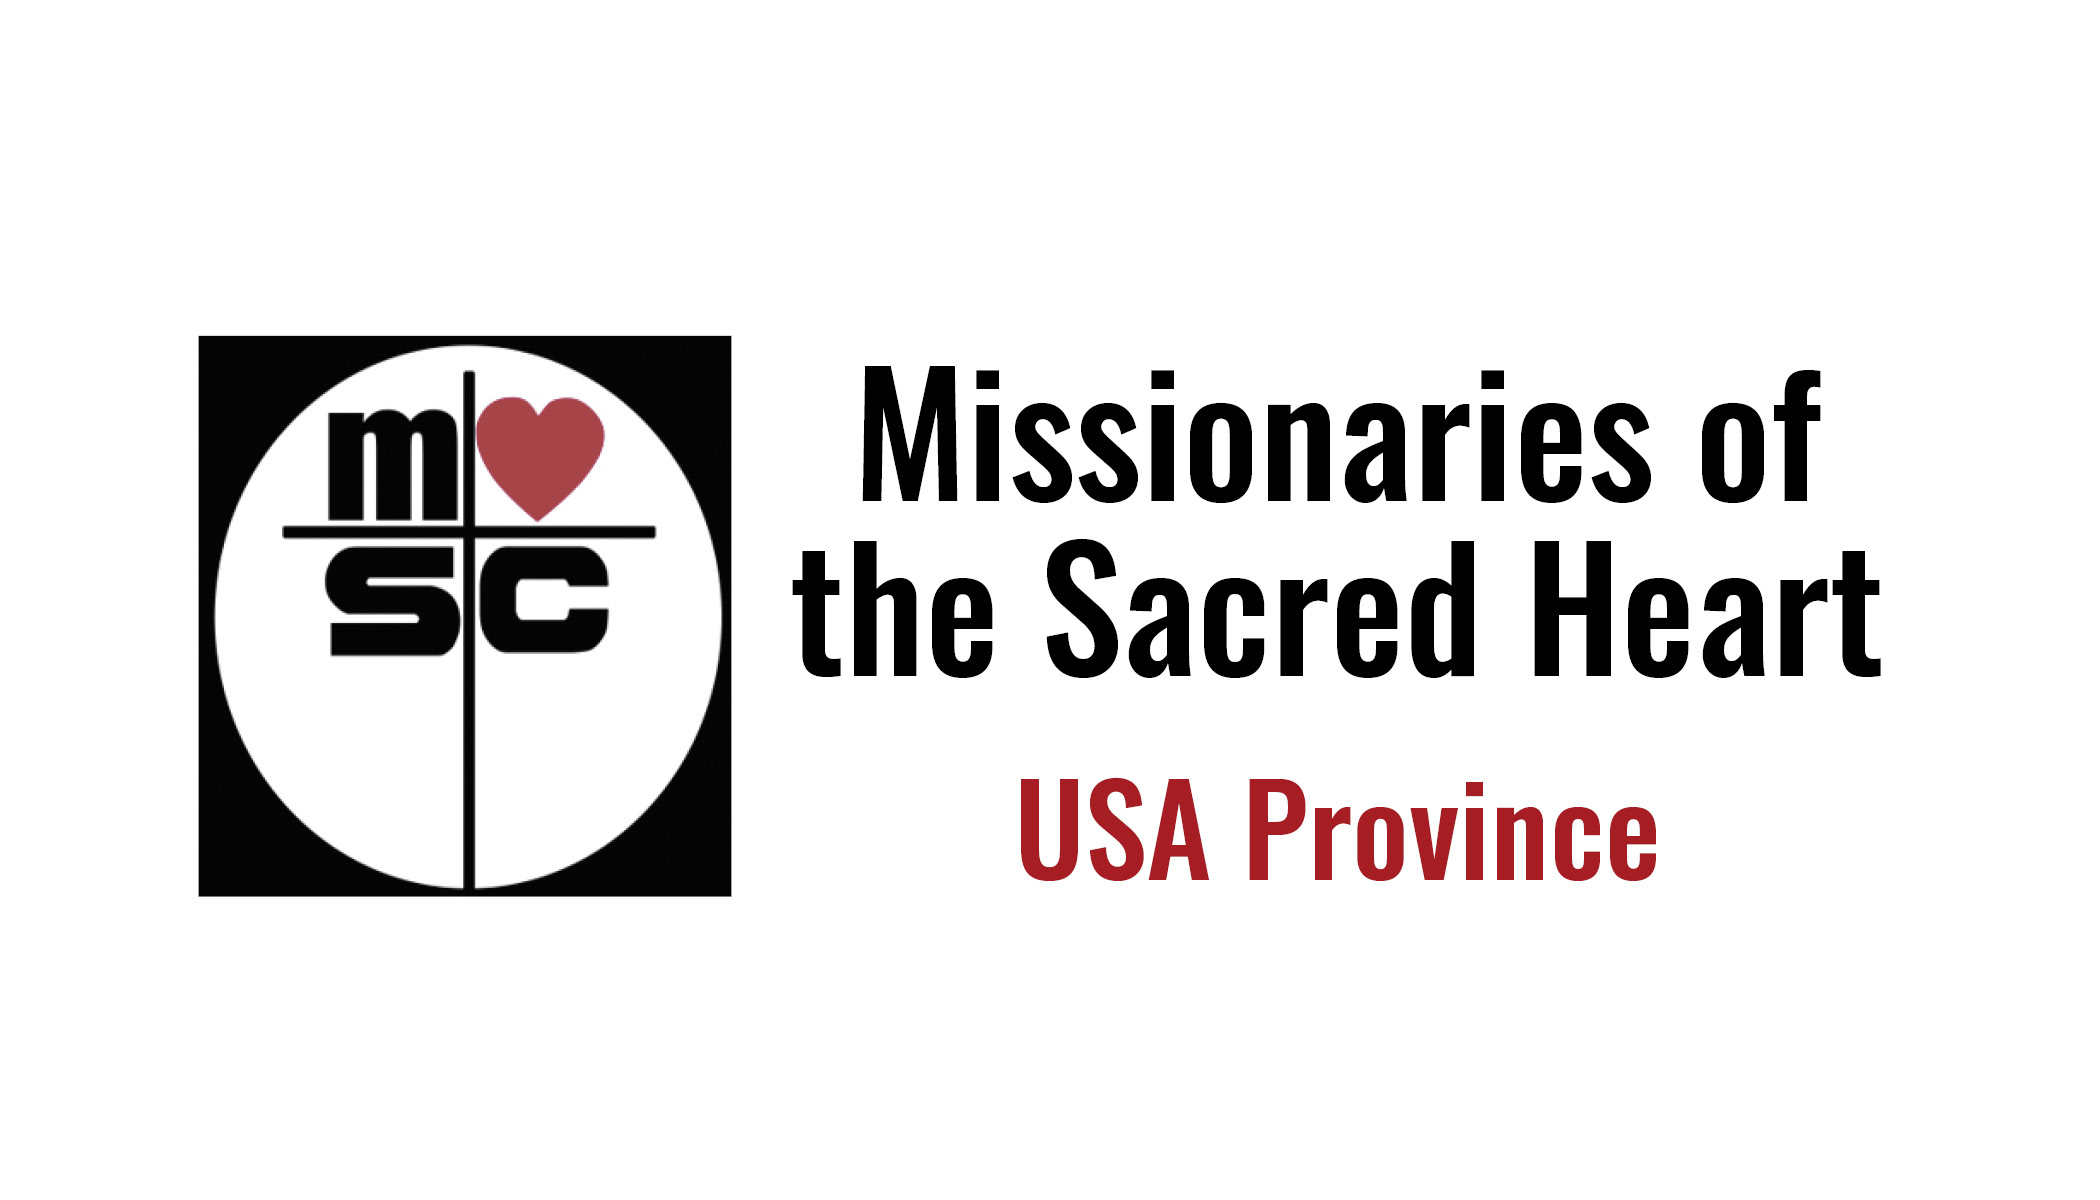 Missionaries of the Sacred Heart (USA)